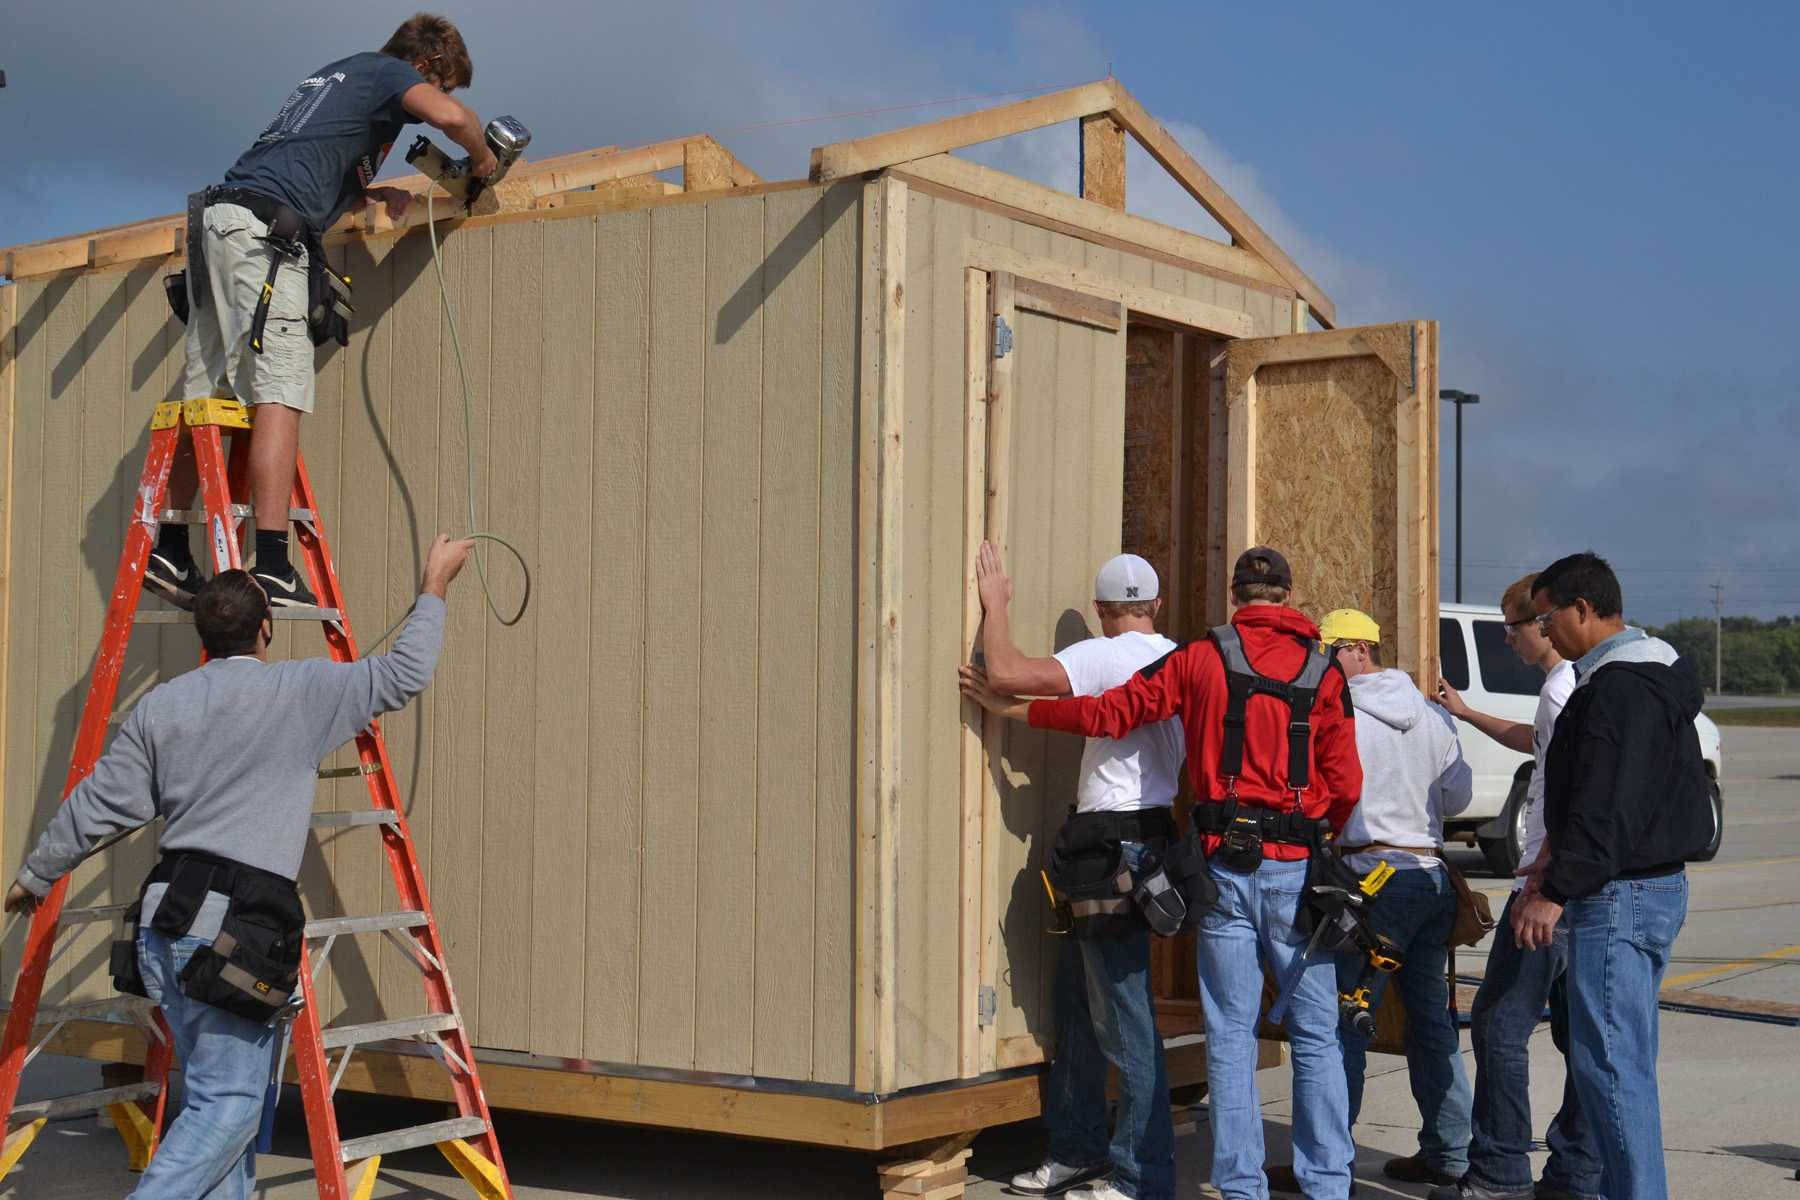 Ryan Hobza (right), building construction instructor at Northeast Community College, oversees members of his freshman class as they construct a shed at First Christian Church in Norfolk. The church accepted the help from the students to construct two of the sheds, which will be sent to Pilger along with several others. First Christian is providing the sheds to victims of a June 16 tornado who plan to rebuild their homes in the Stanton County village. (Courtesy First Christian Church)